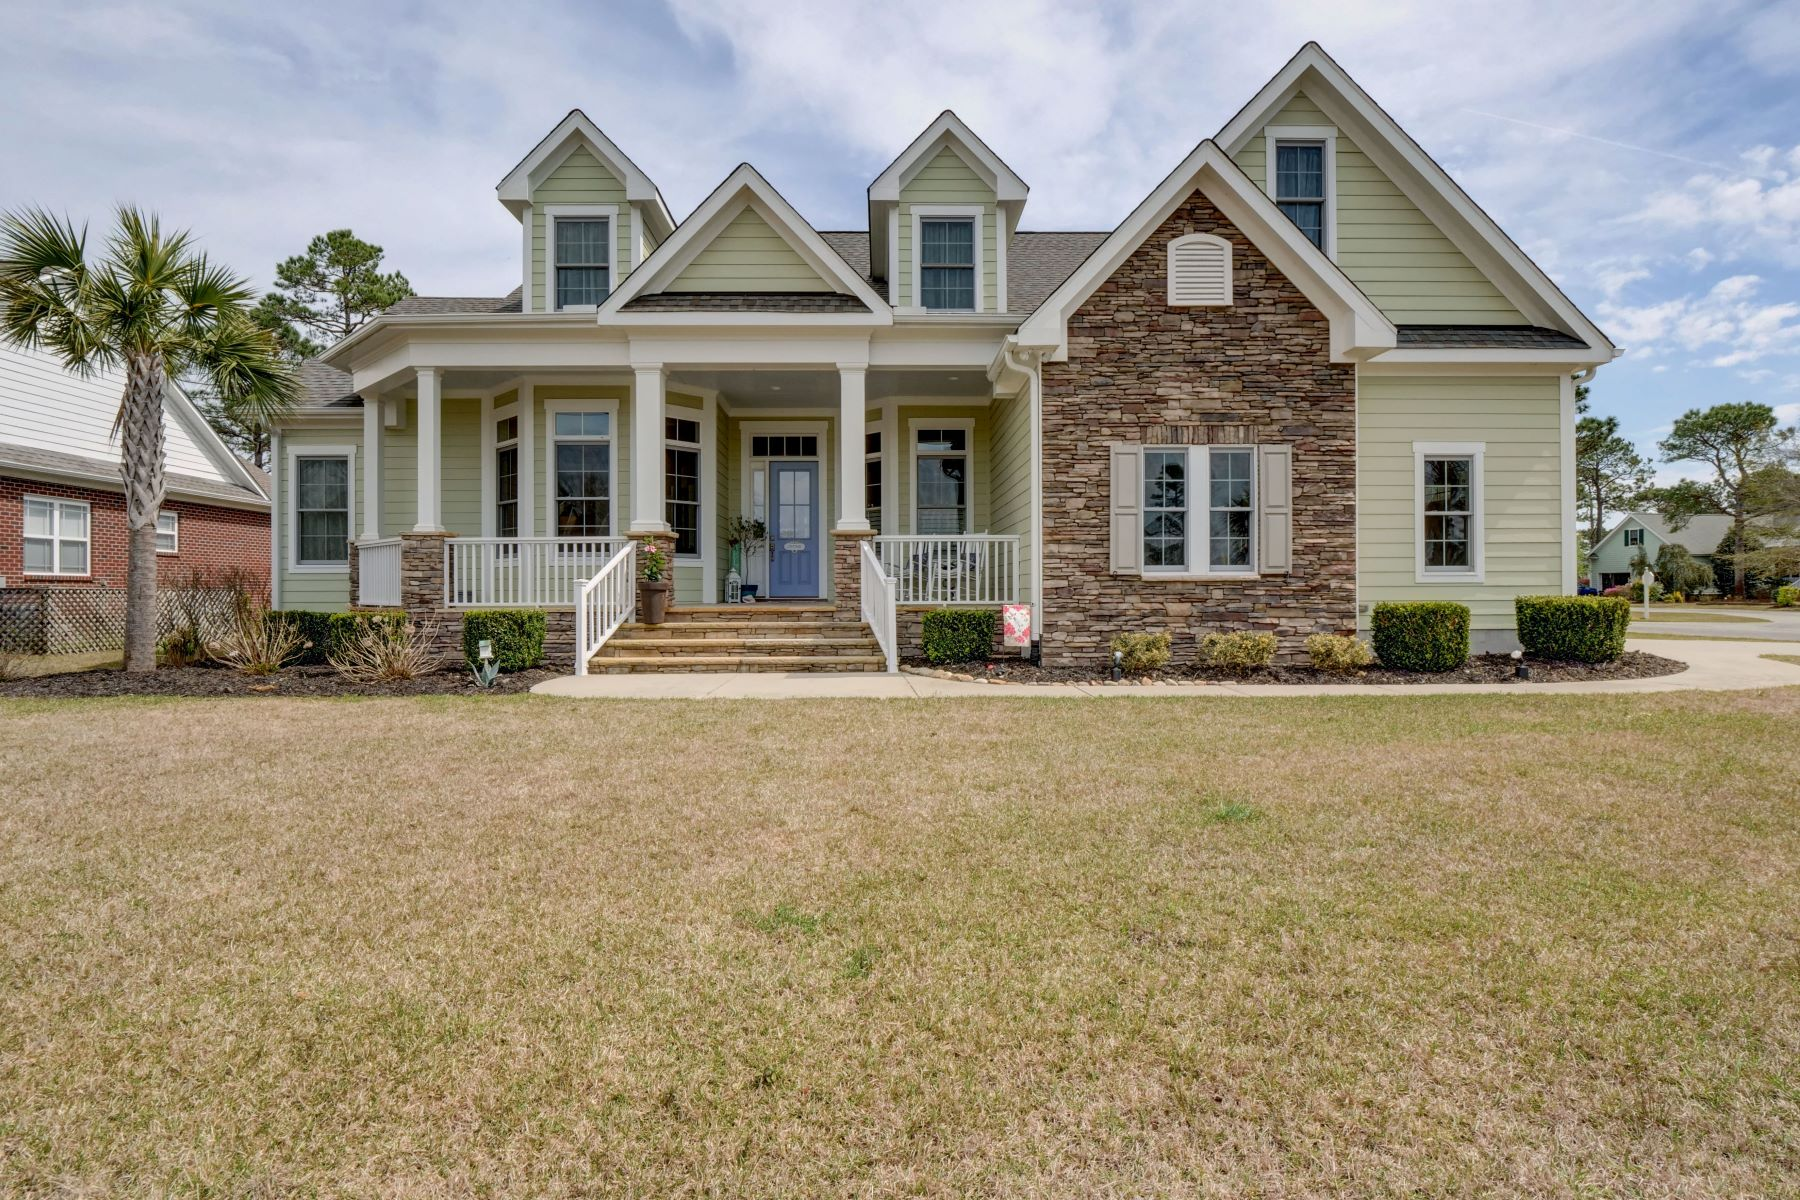 Single Family Home for Active at Custom Built Home with High End Features 4398 Ascot Circle SE Southport, North Carolina 28461 United States